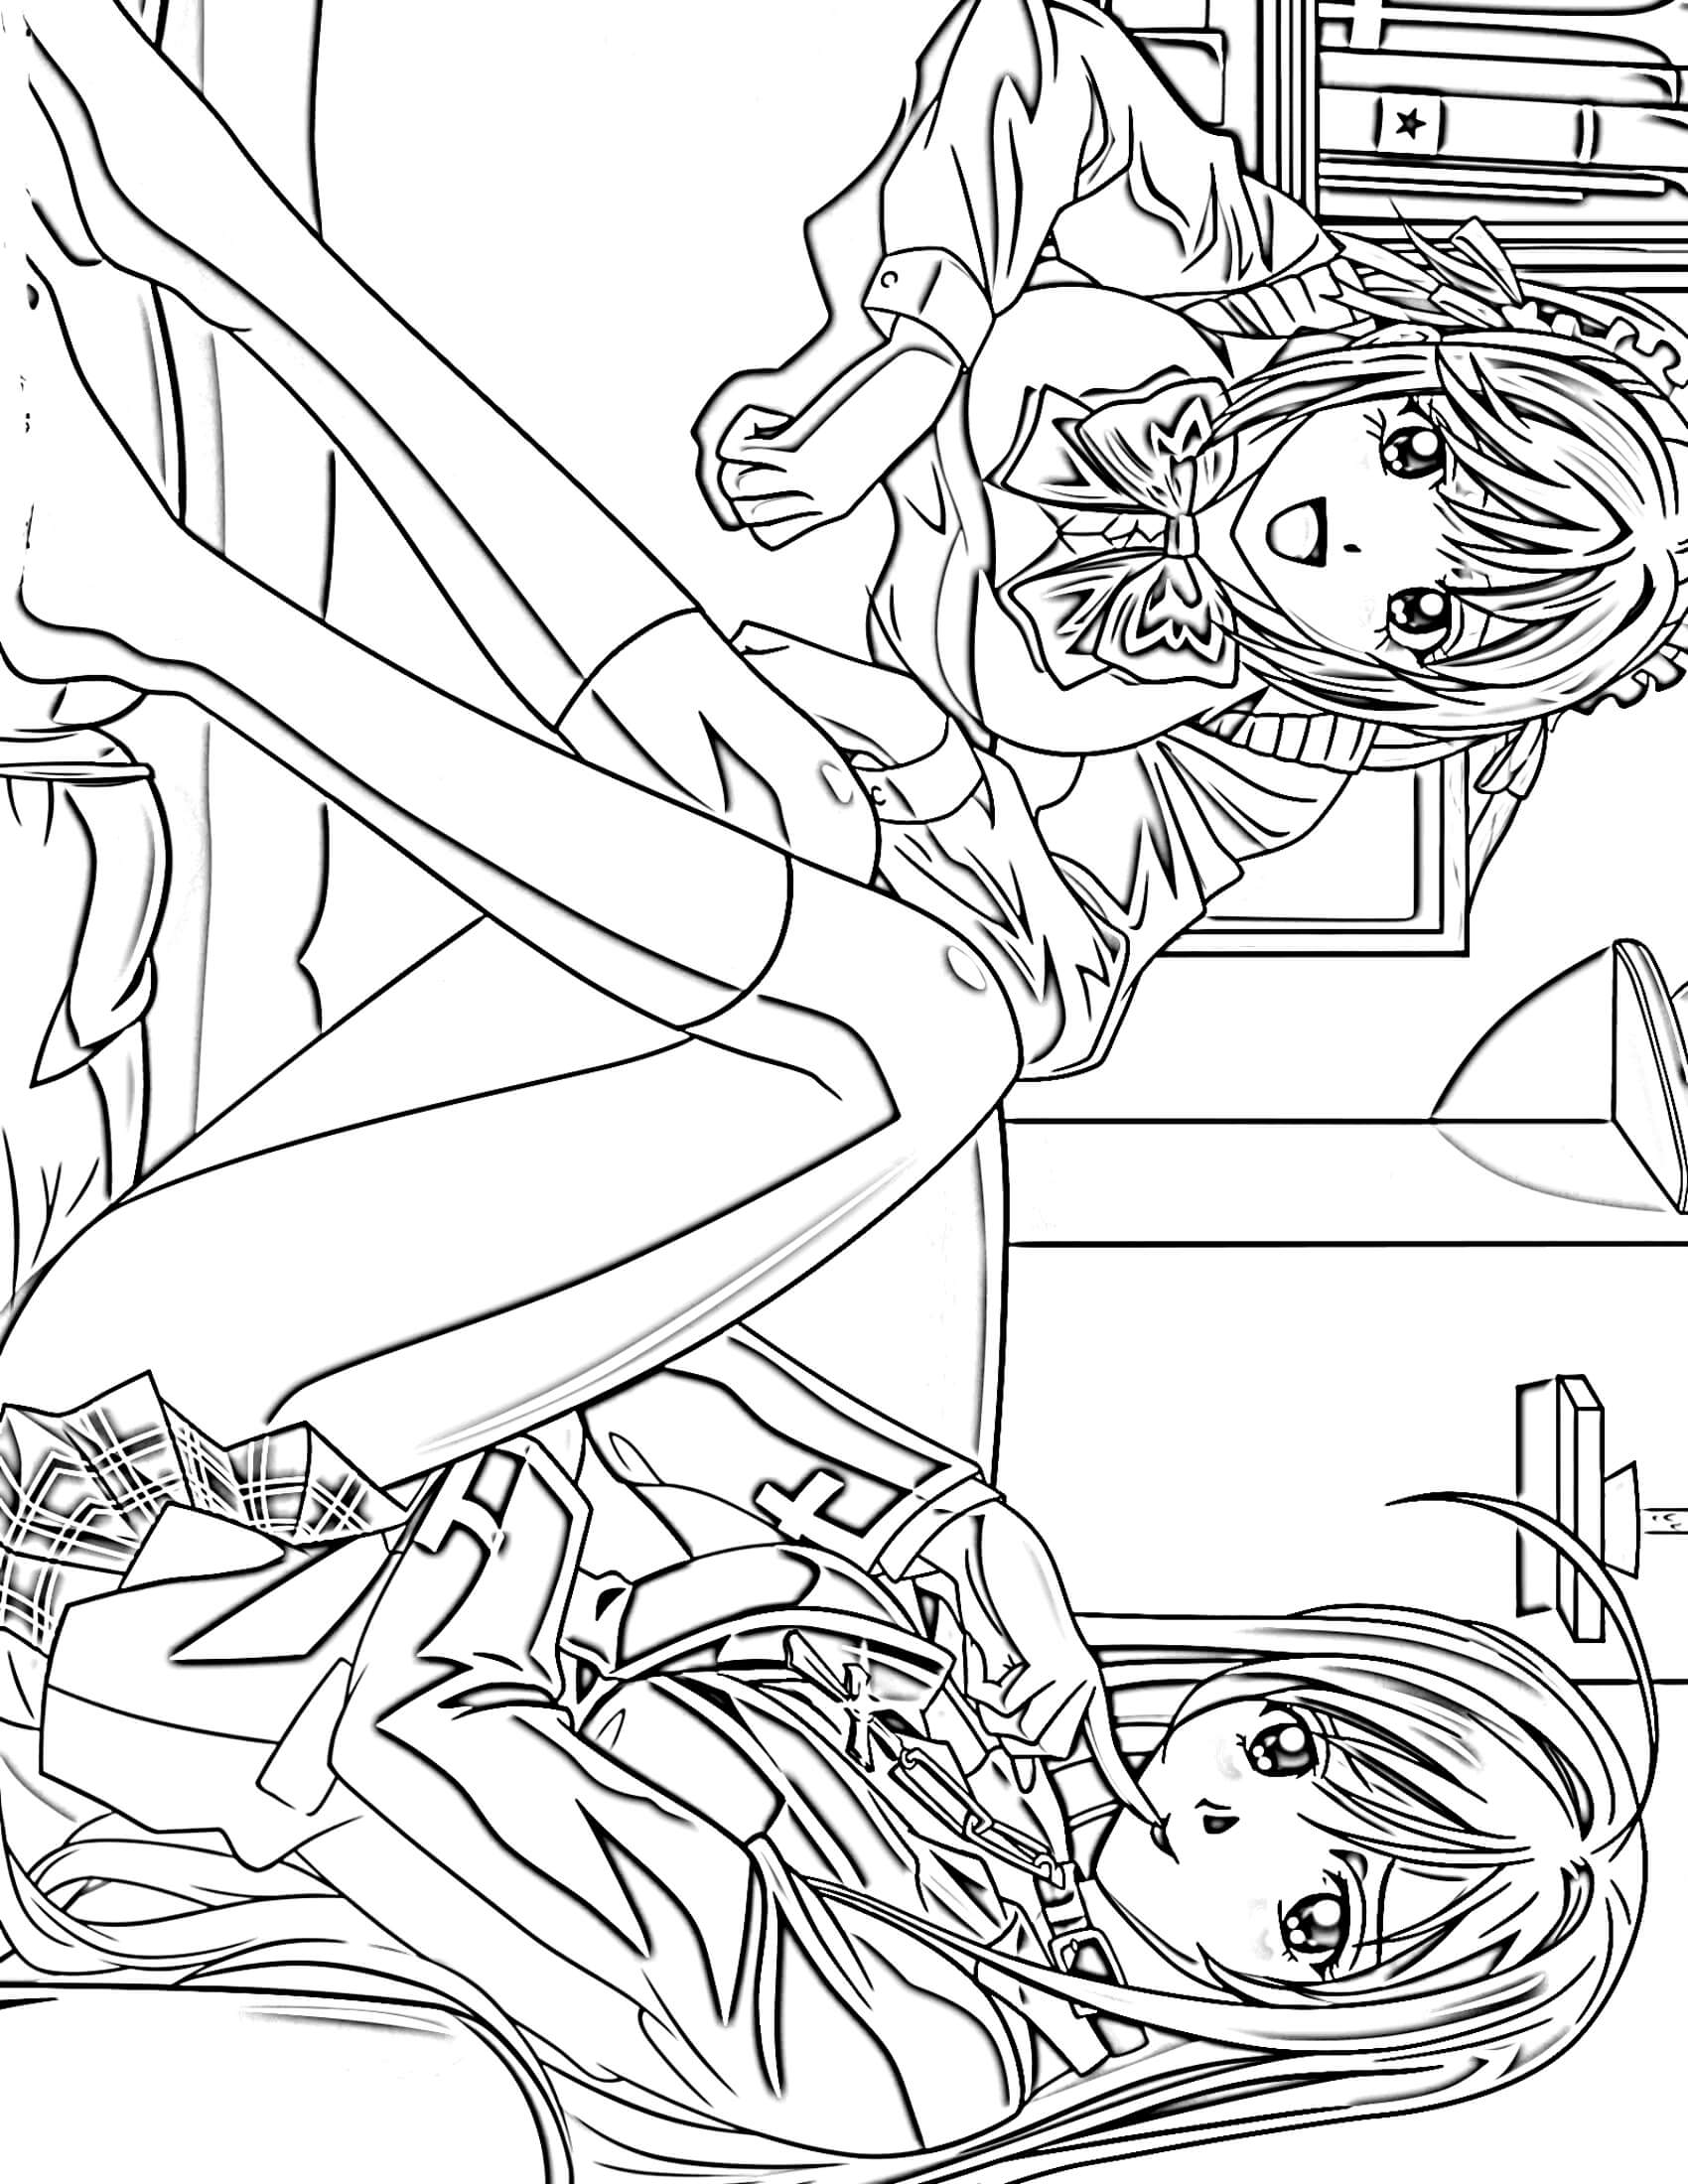 animation coloring pages 8 cartoon coloring pages jpg ai illustrator download pages coloring animation